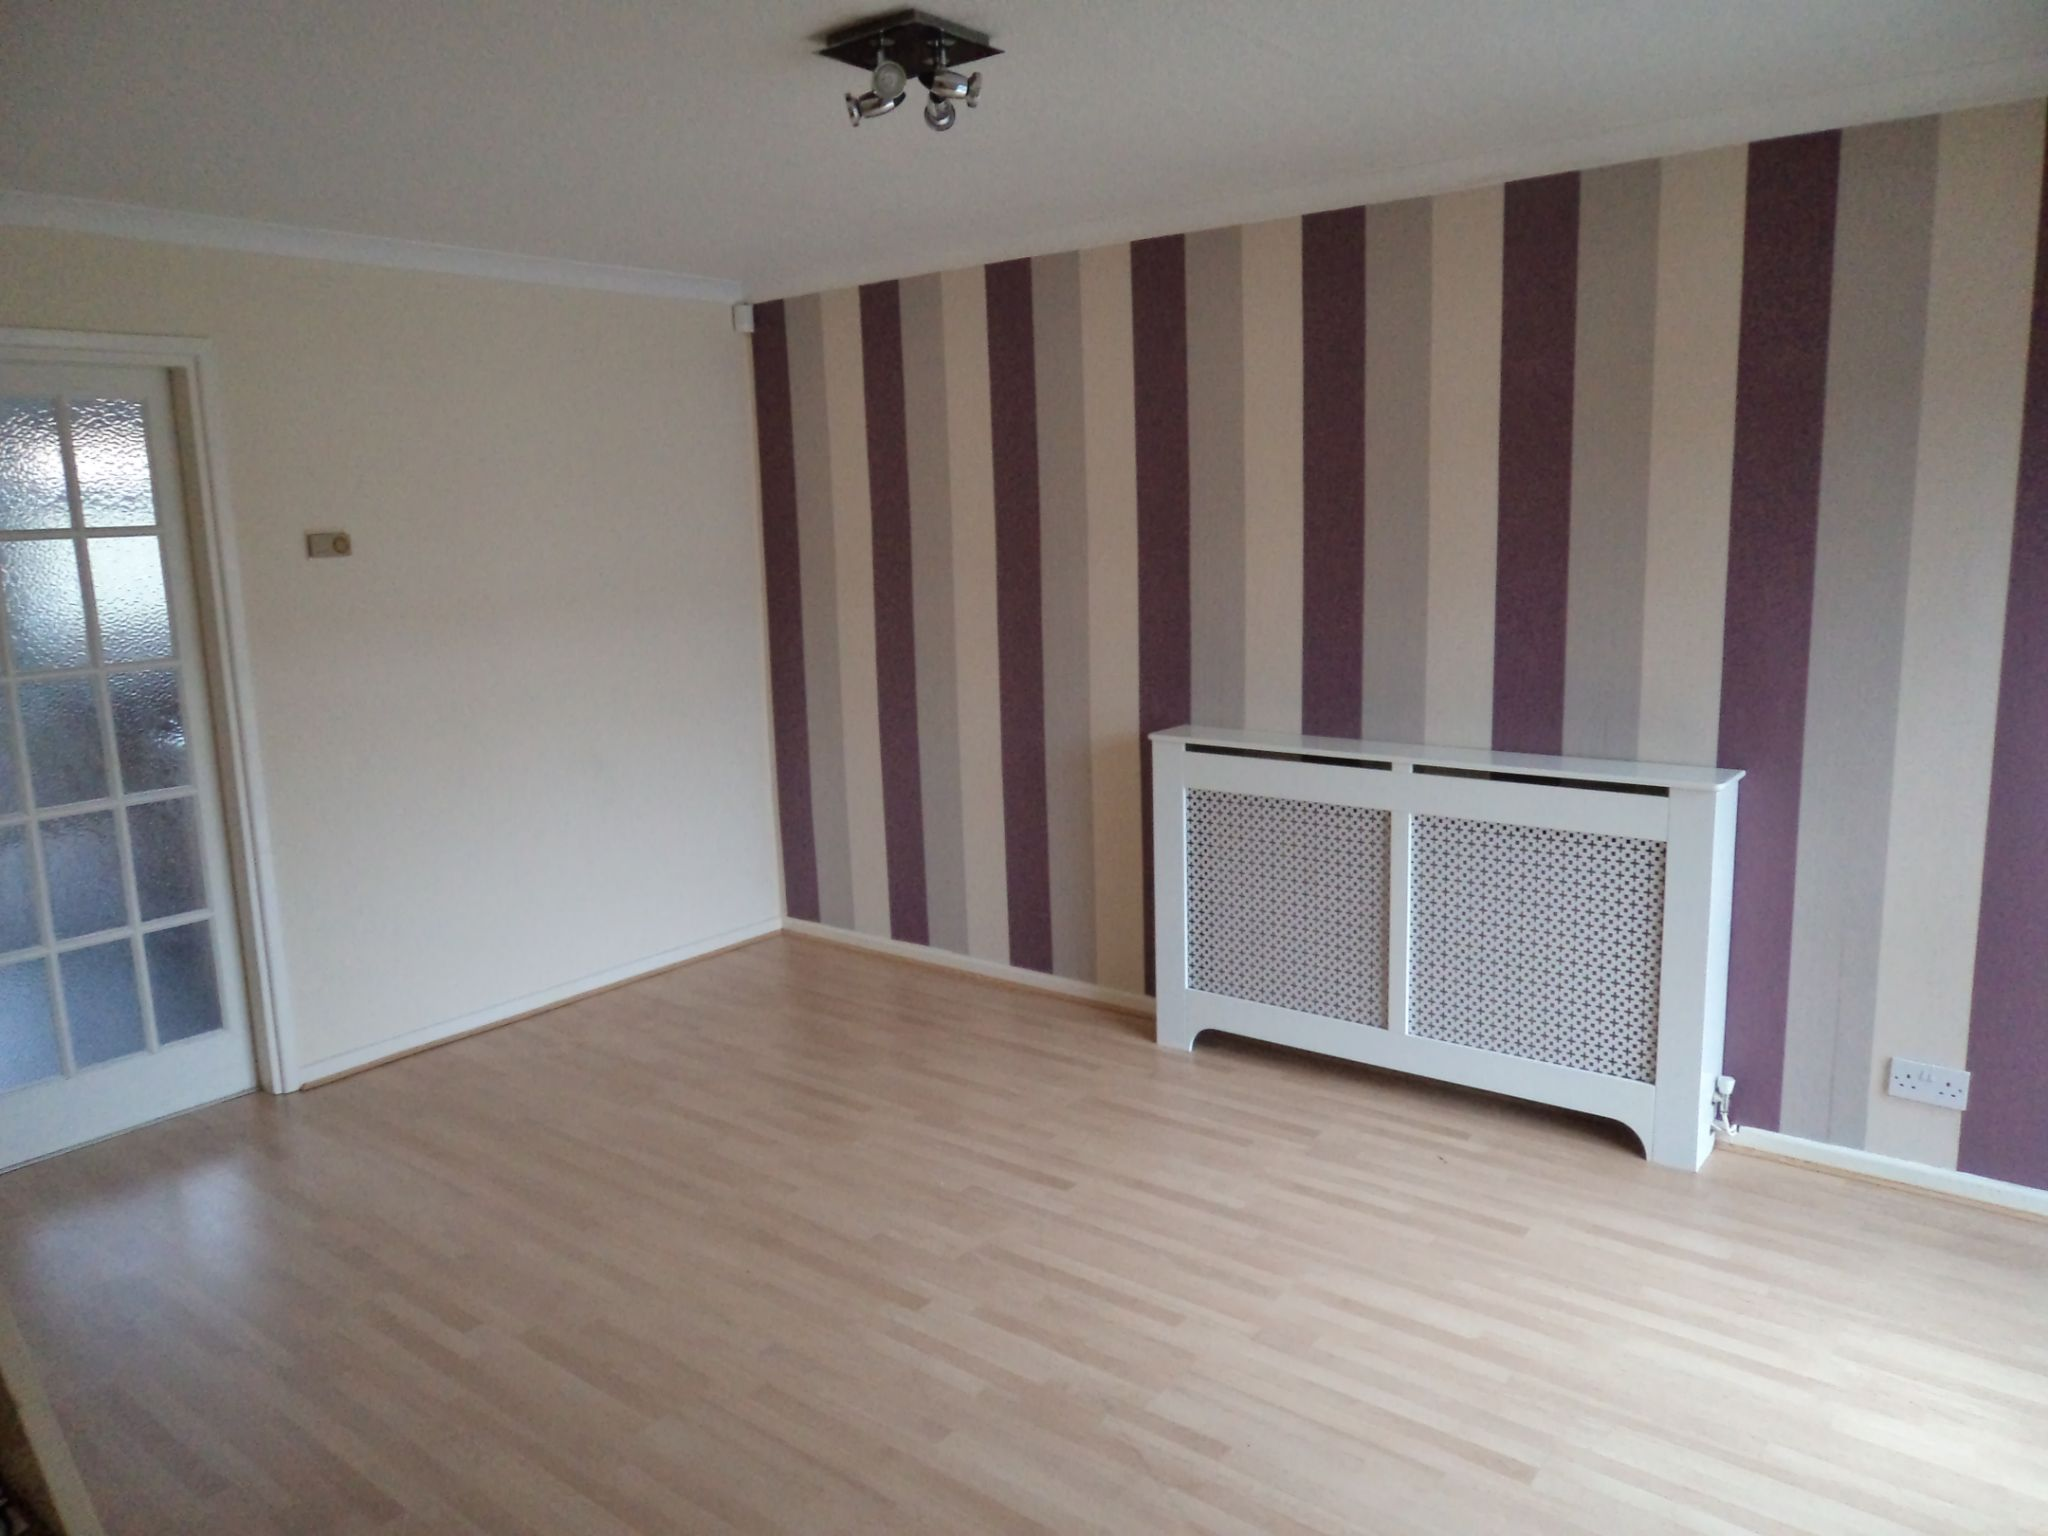 2 Bed Semi-detached House For Sale - Lounge